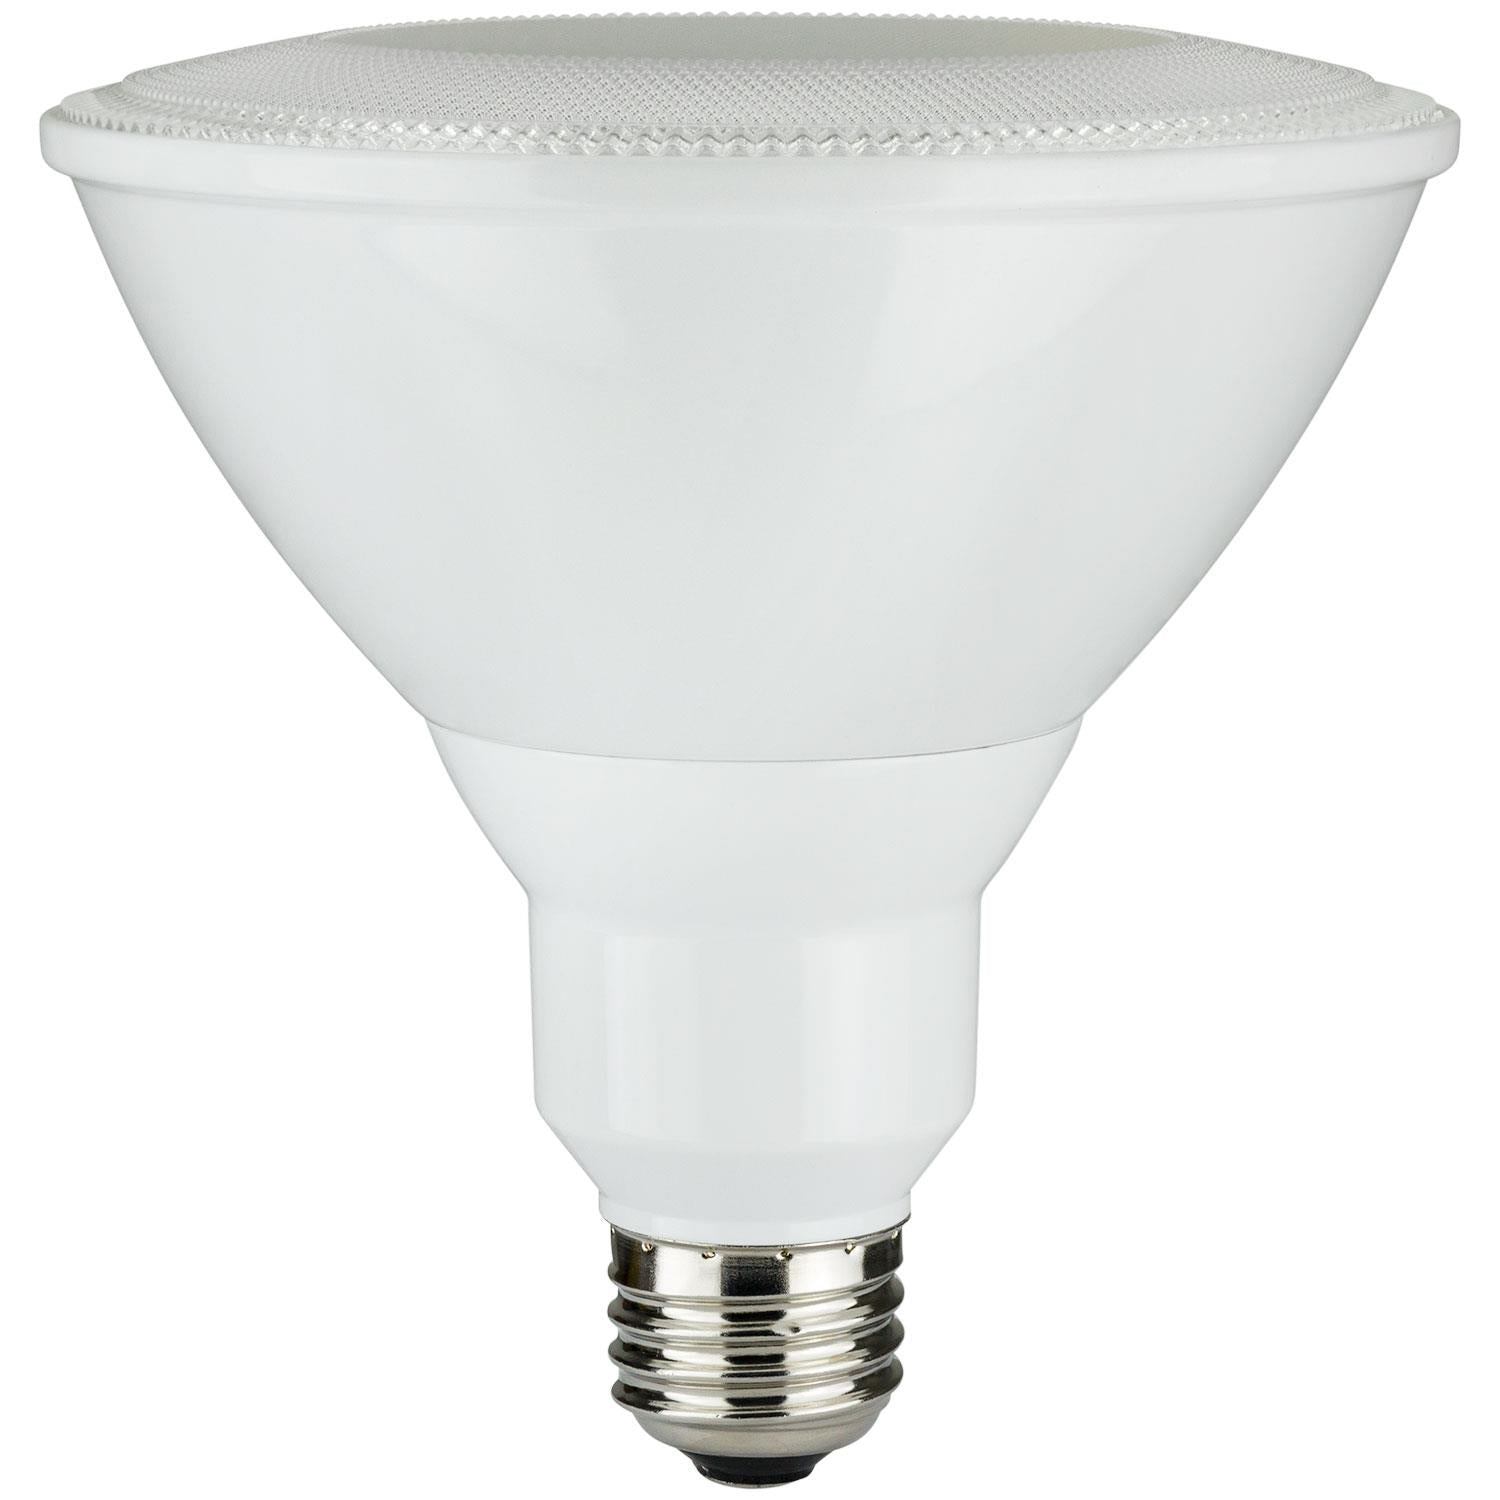 Sunlite 80049-SU LED PAR38 Reflector HE Series 17.5w Light Bulb Cool White